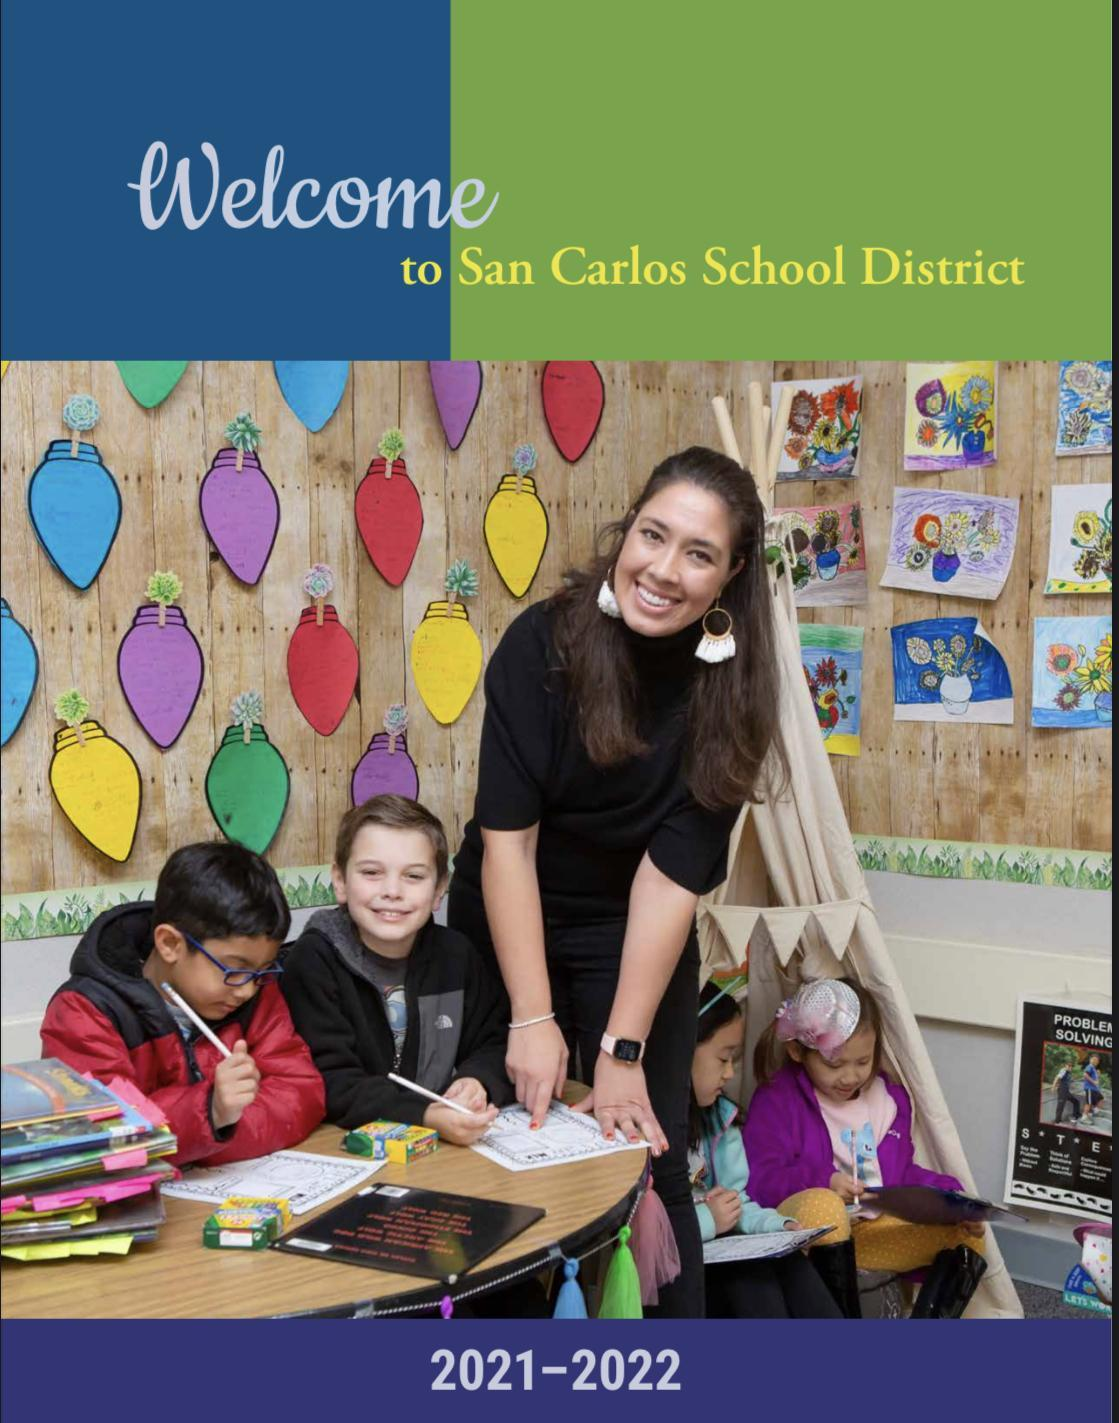 SCSD Welcome Handbook Image